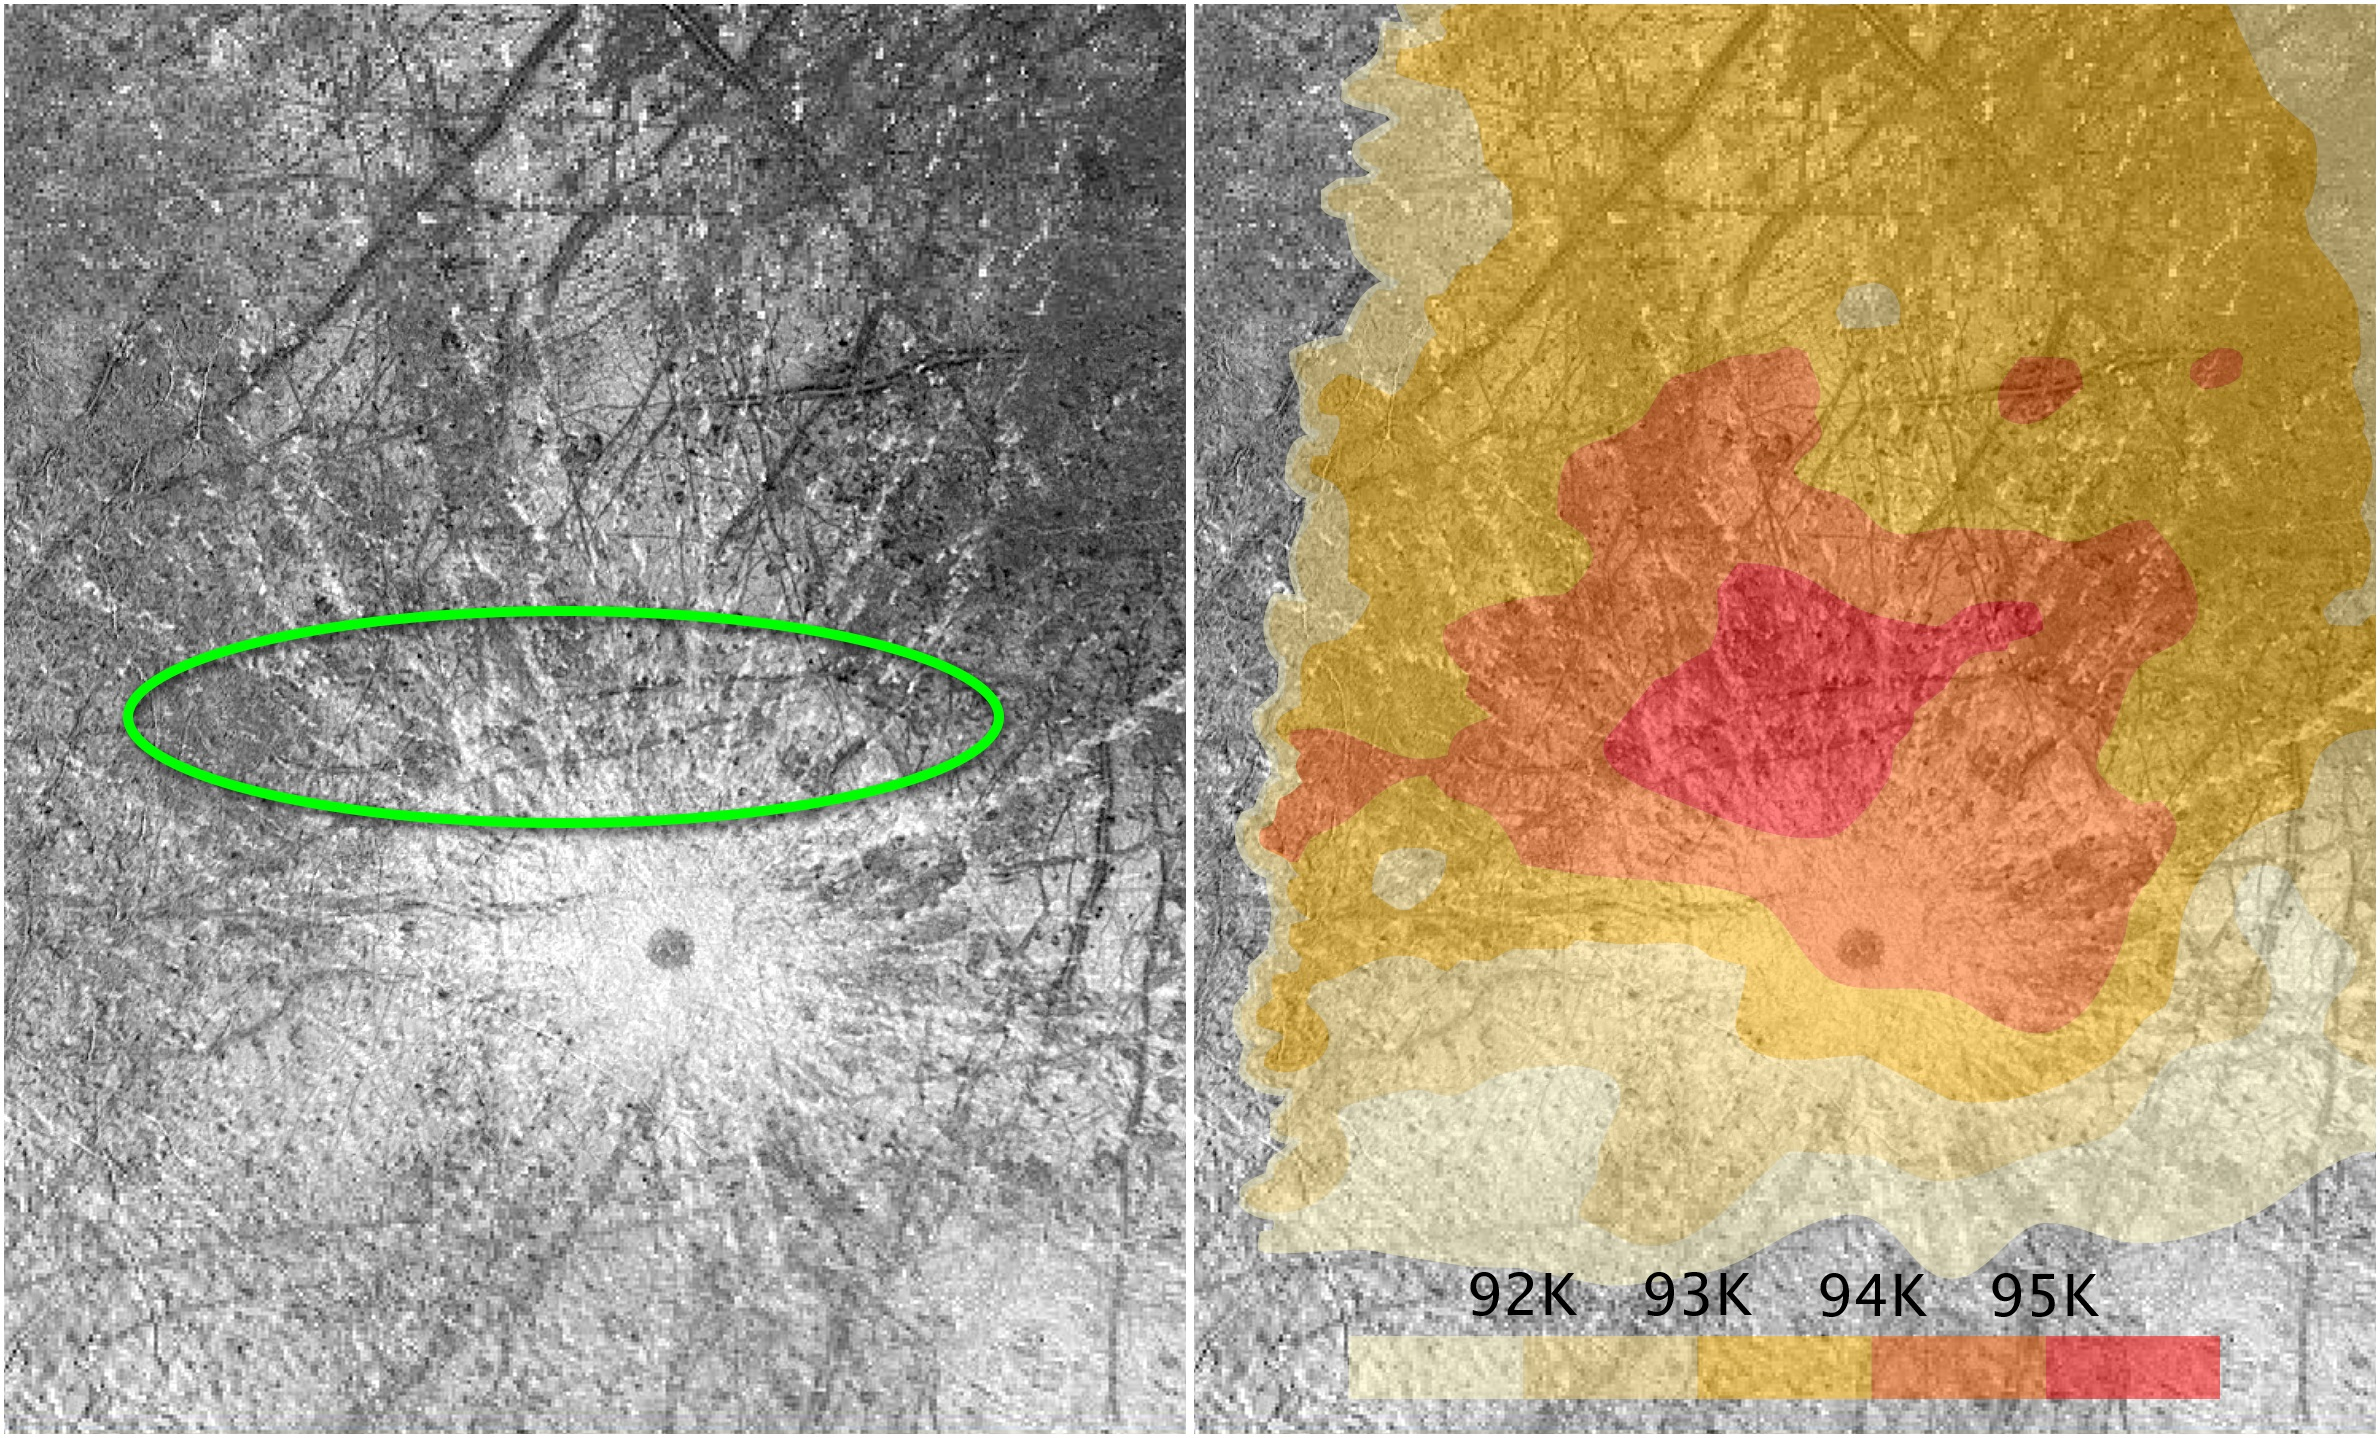 The green oval highlights the plumes Hubble observed on Europa. The area also corresponds to a warm region on Europa's surface. The map is based on observations by the Galileo spacecraft. Credits: NASA/ESA/STScI/USGS Image credit: